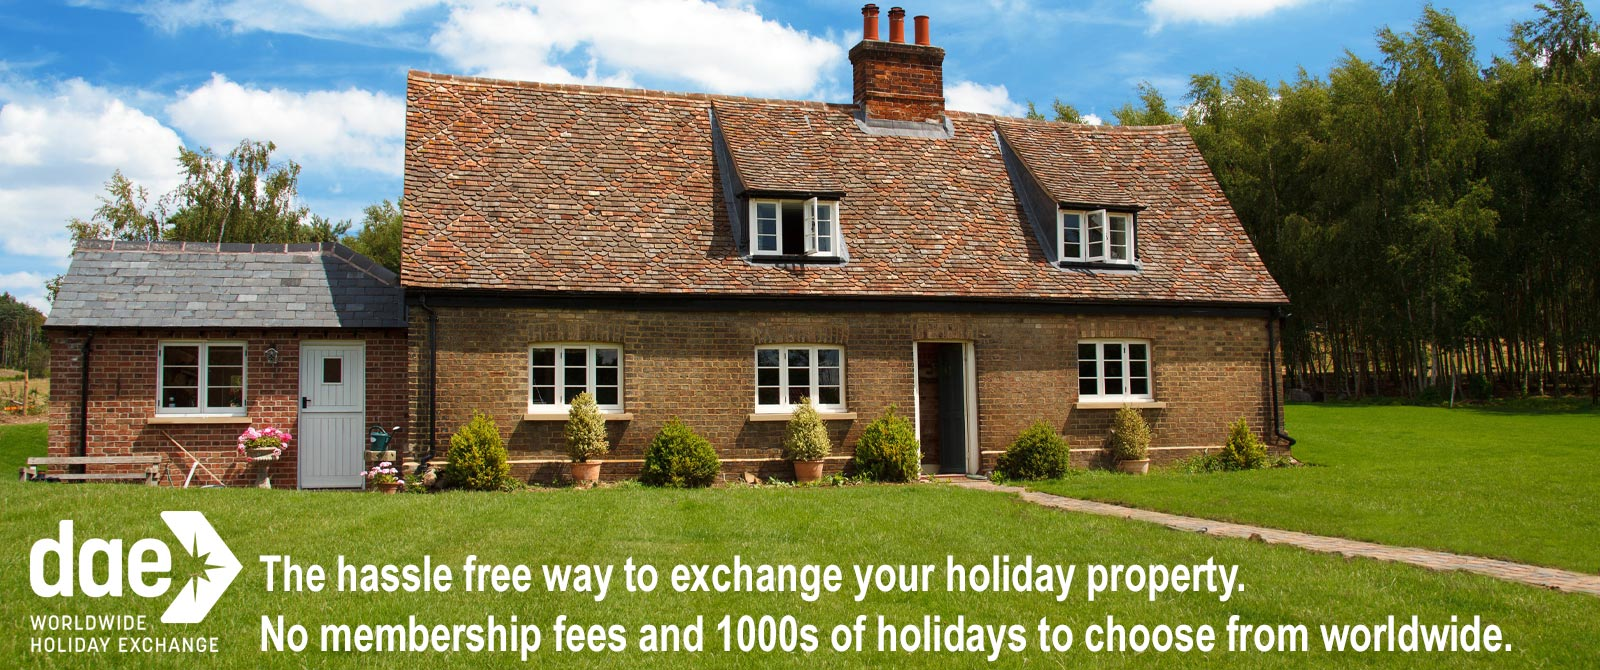 Worldwide Holiday Home and Timeshare Exchange - Dial An Exchange